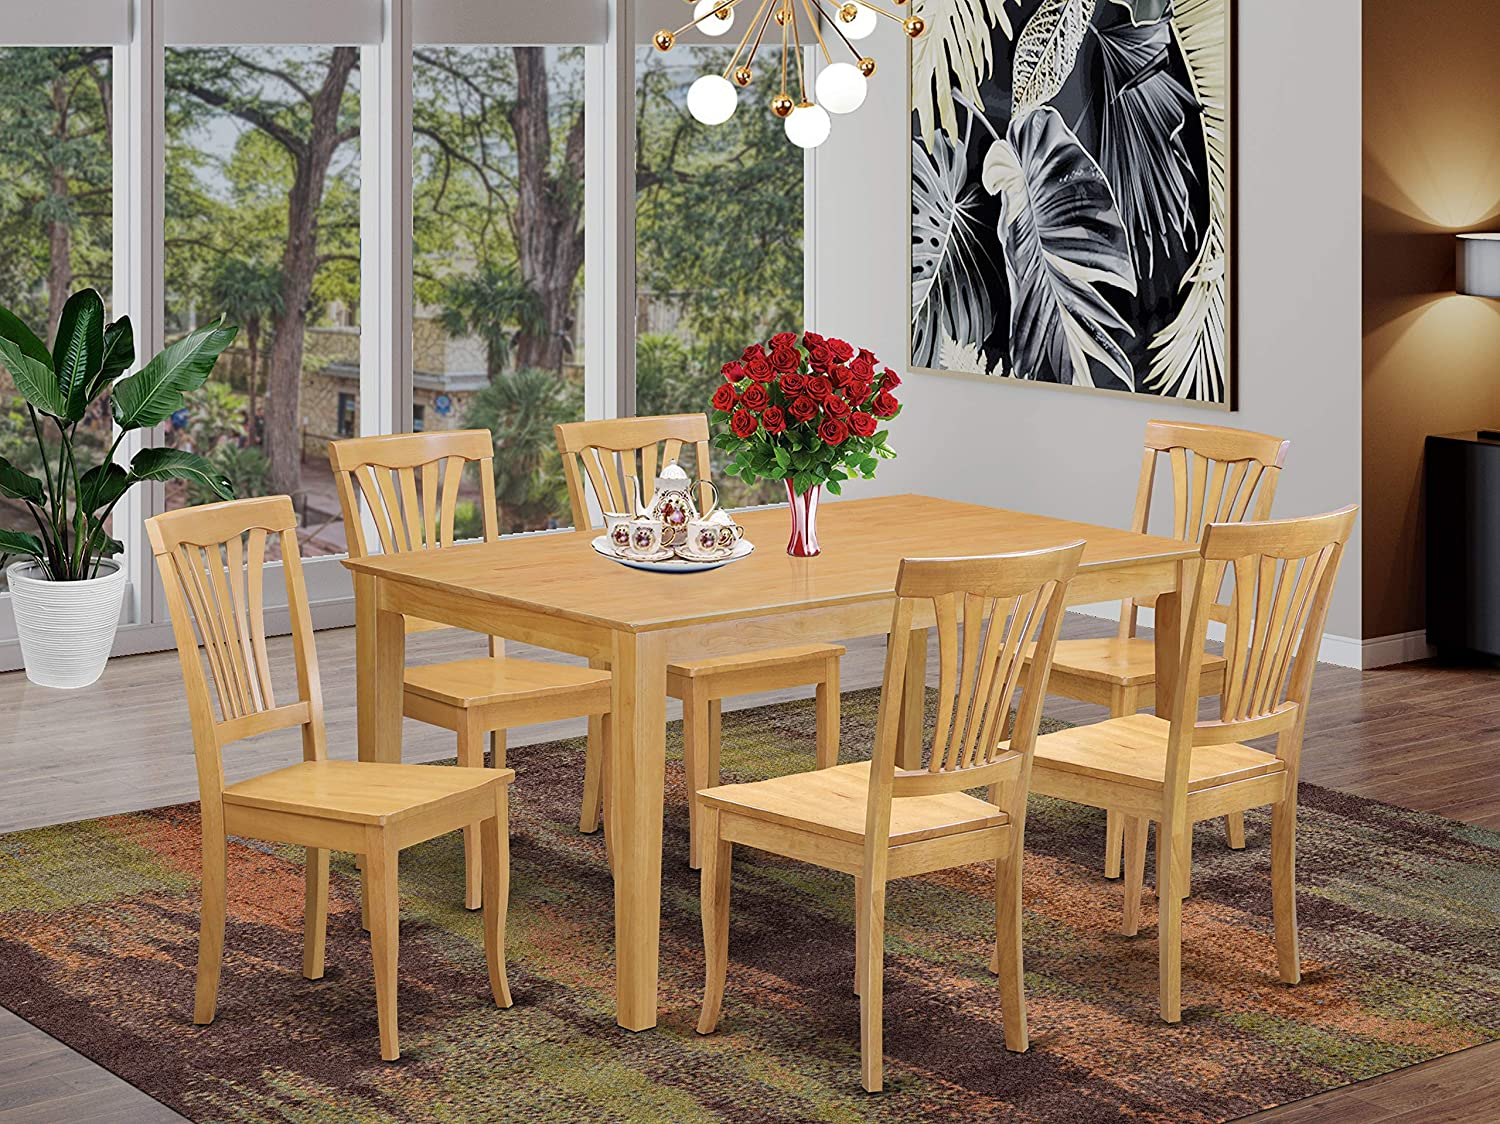 East West Furniture Rectangular Kitchen Table Set 9 Pc   Oak Color Wooden  Kitchen Dining Chairs Seat   Oak Finish Dining Room Table and Structure